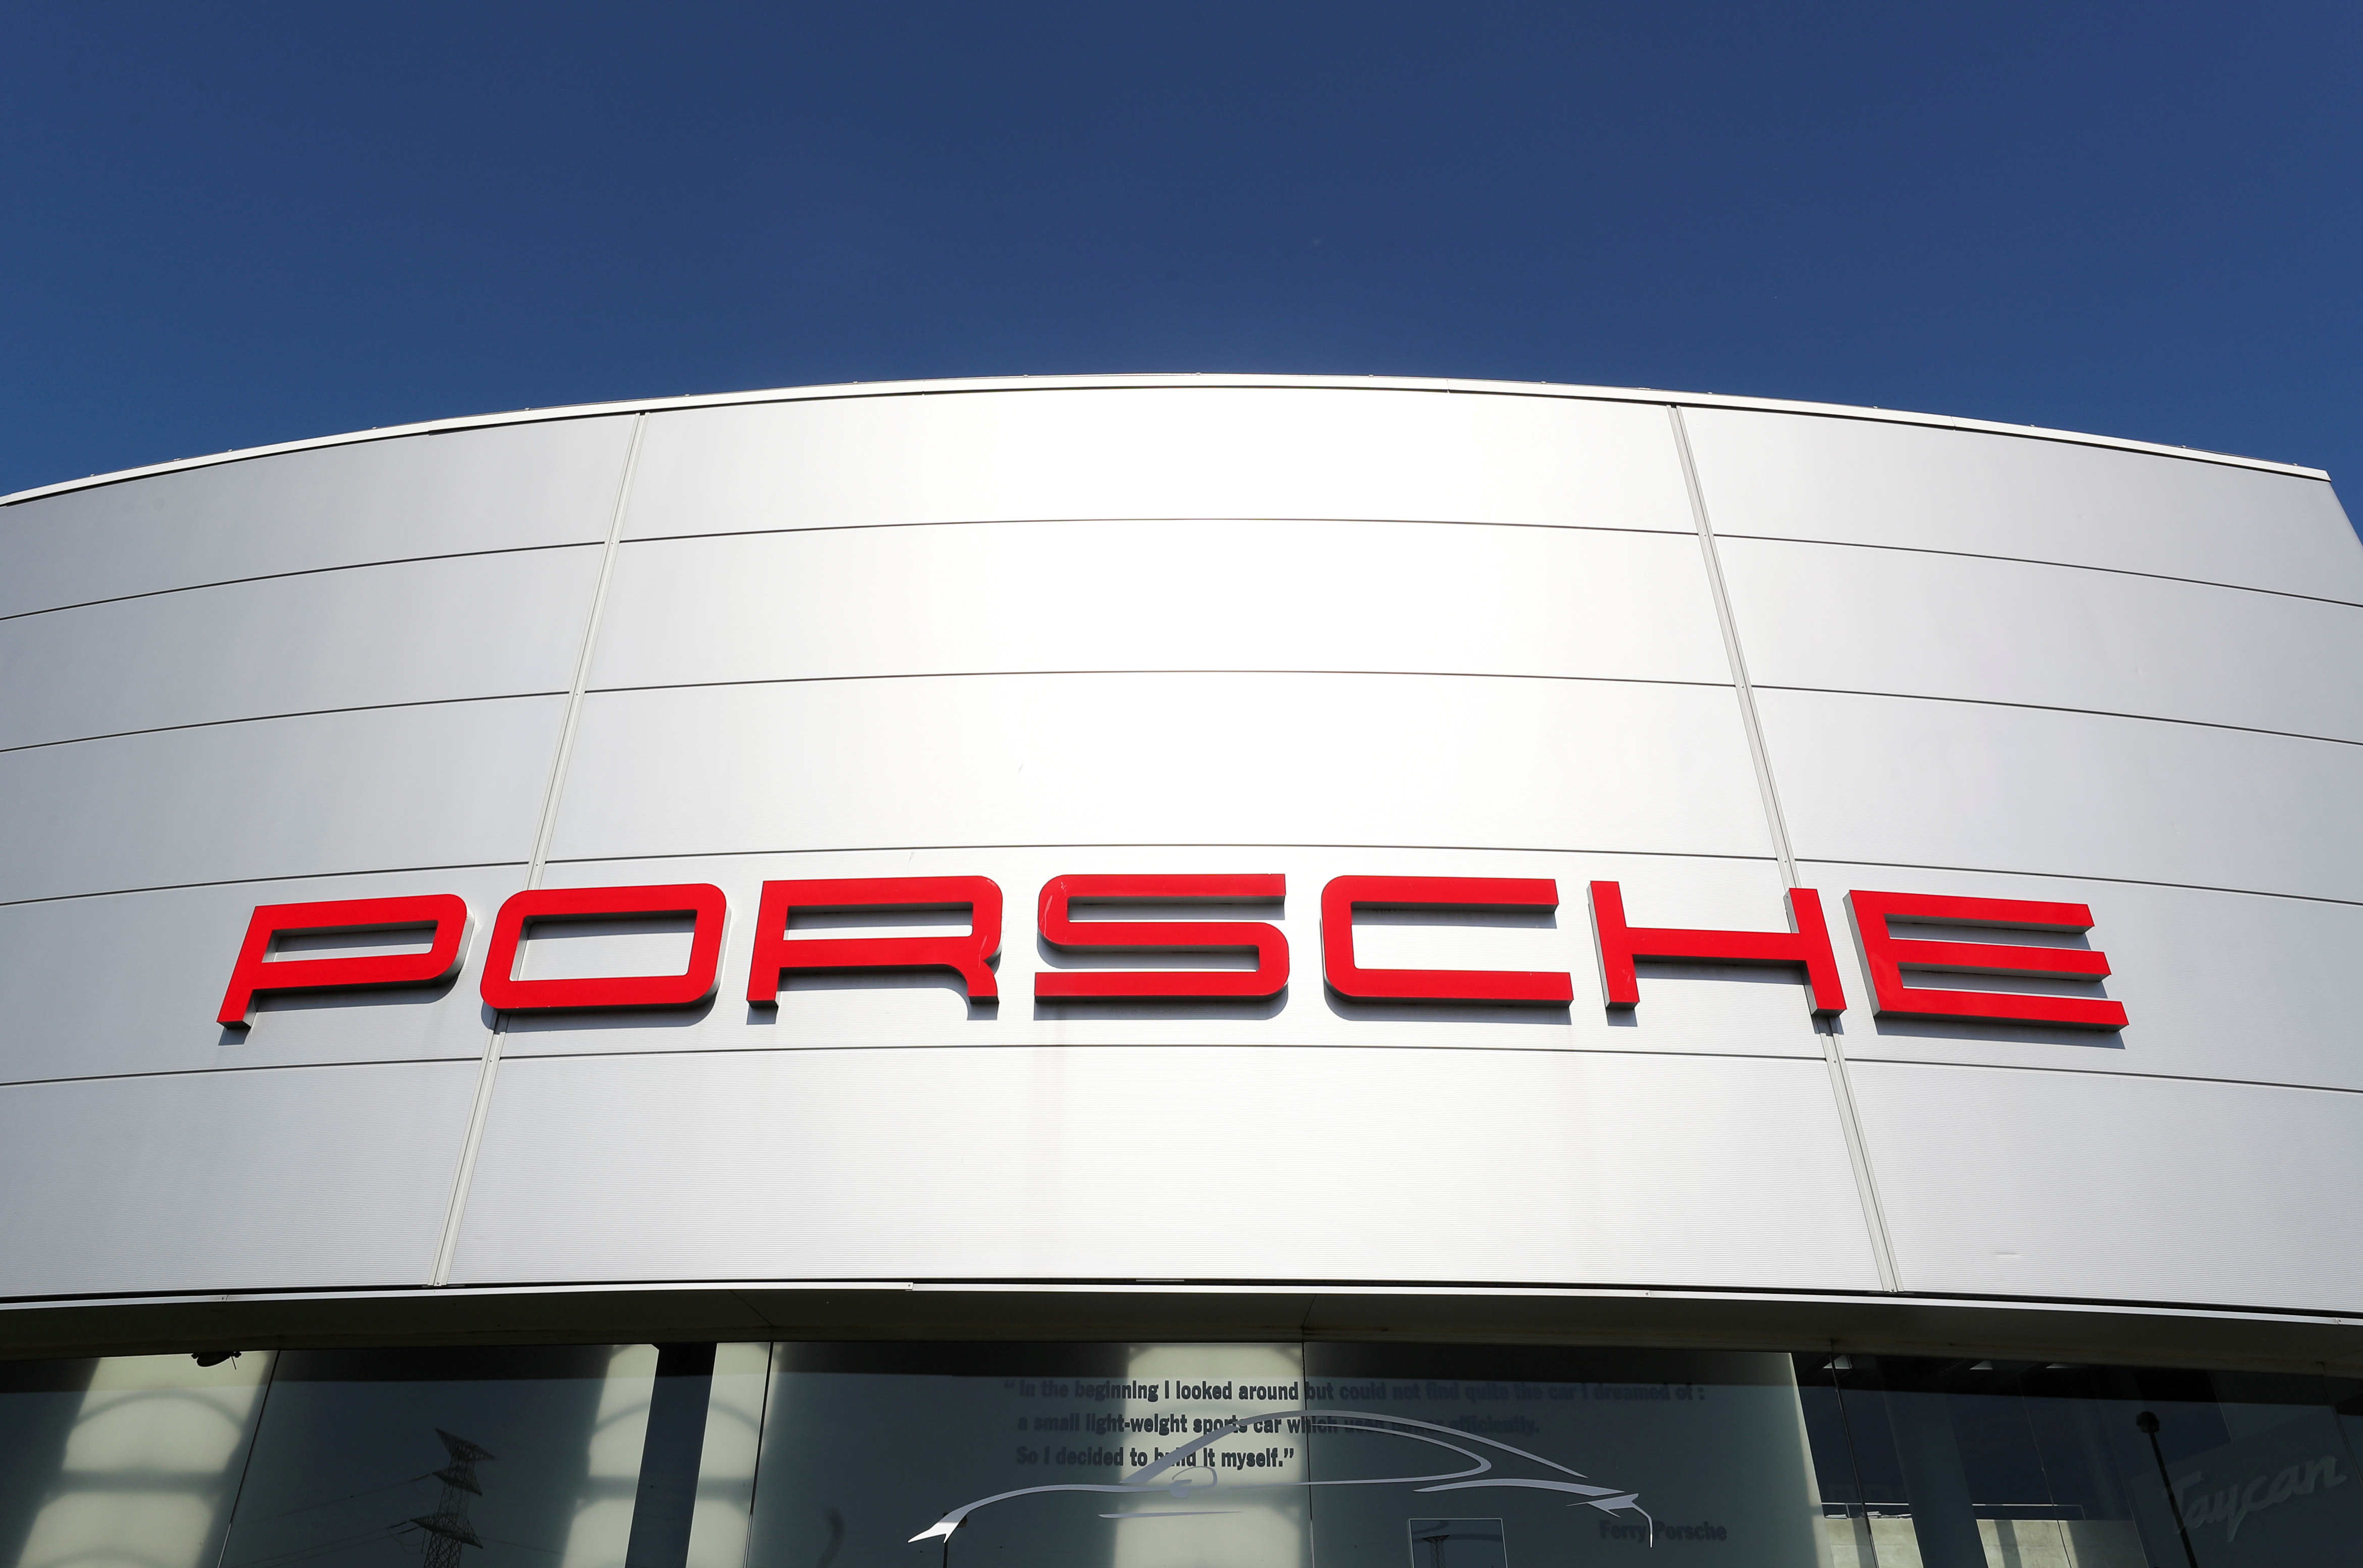 A logo of Porsche is seen outside a Porsche car dealer, amid the coronavirus disease (COVID-19) outbreak in Brussels, Belgium May 28, 2020. REUTERS/Yves Herman/File Photo